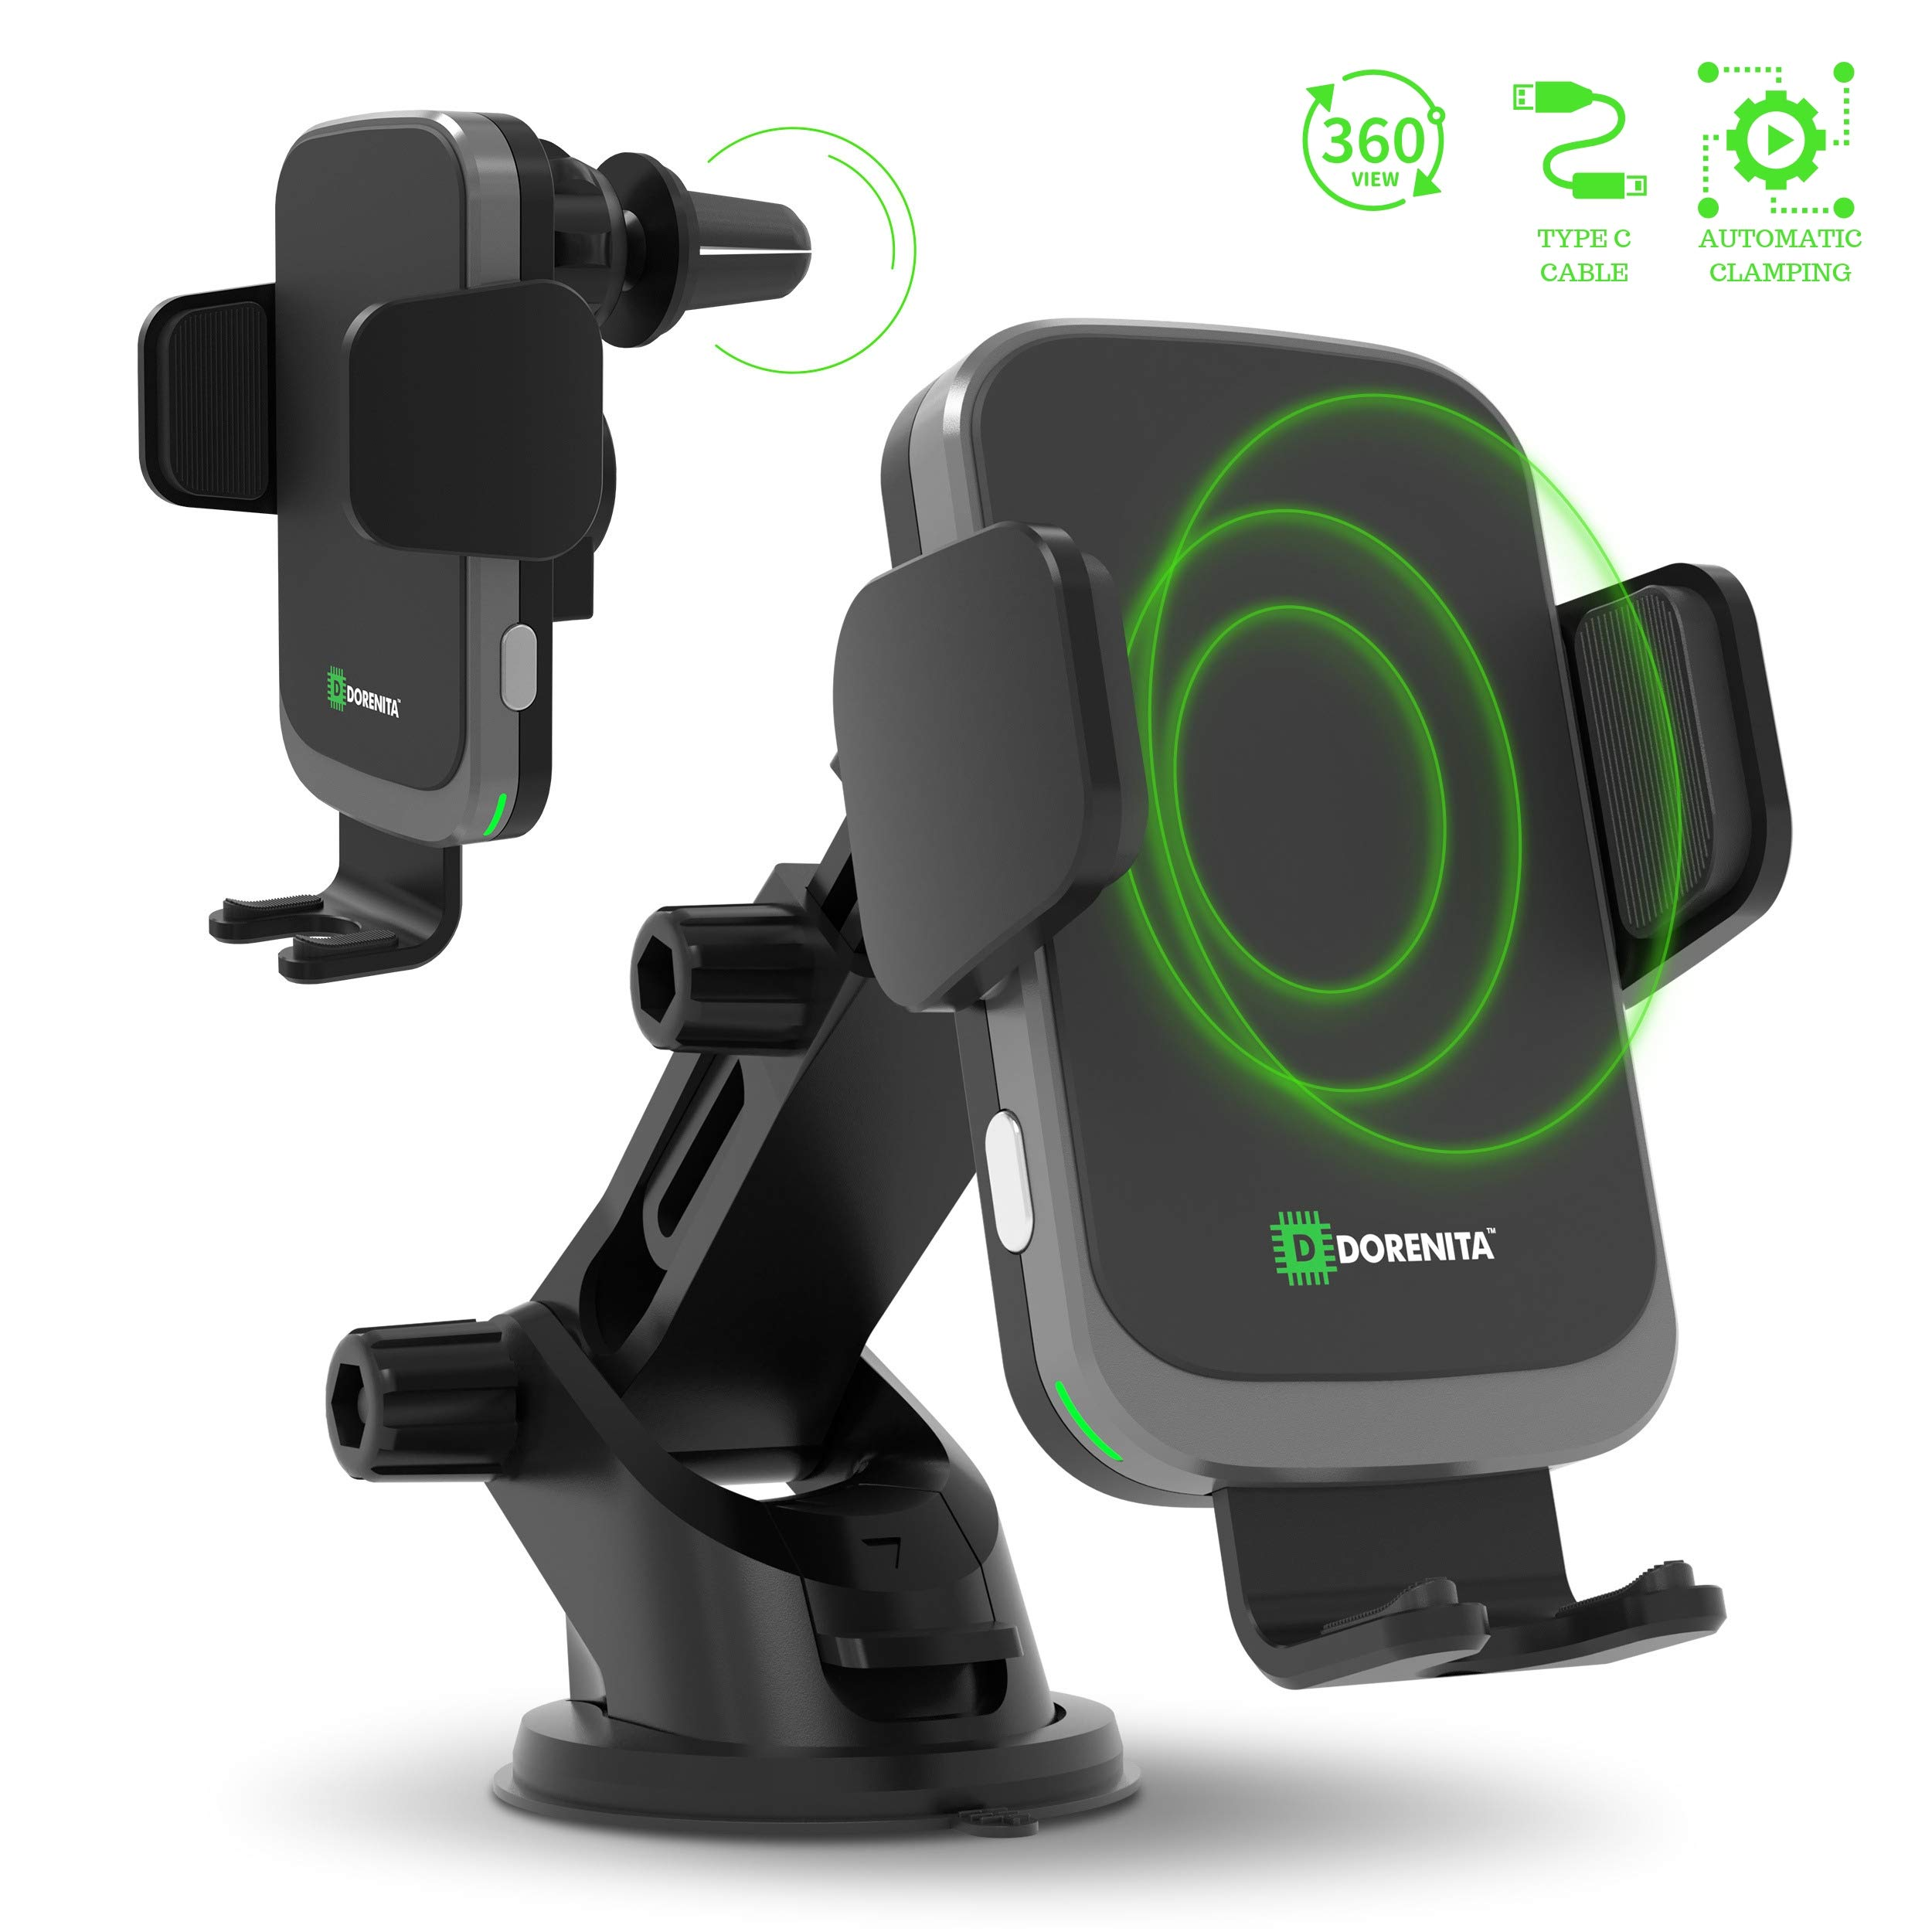 DORENITA Wireless Car Charger Mount: Automatic Clamping and Fast Qi Charging Cell Phone Holder for Car - Compatible with iPhone X, XS Max, Xs, XR, 8, 8+ / Samsung Galaxy S10, S10+, S9, S9+, S8, S8+ by DORENITA